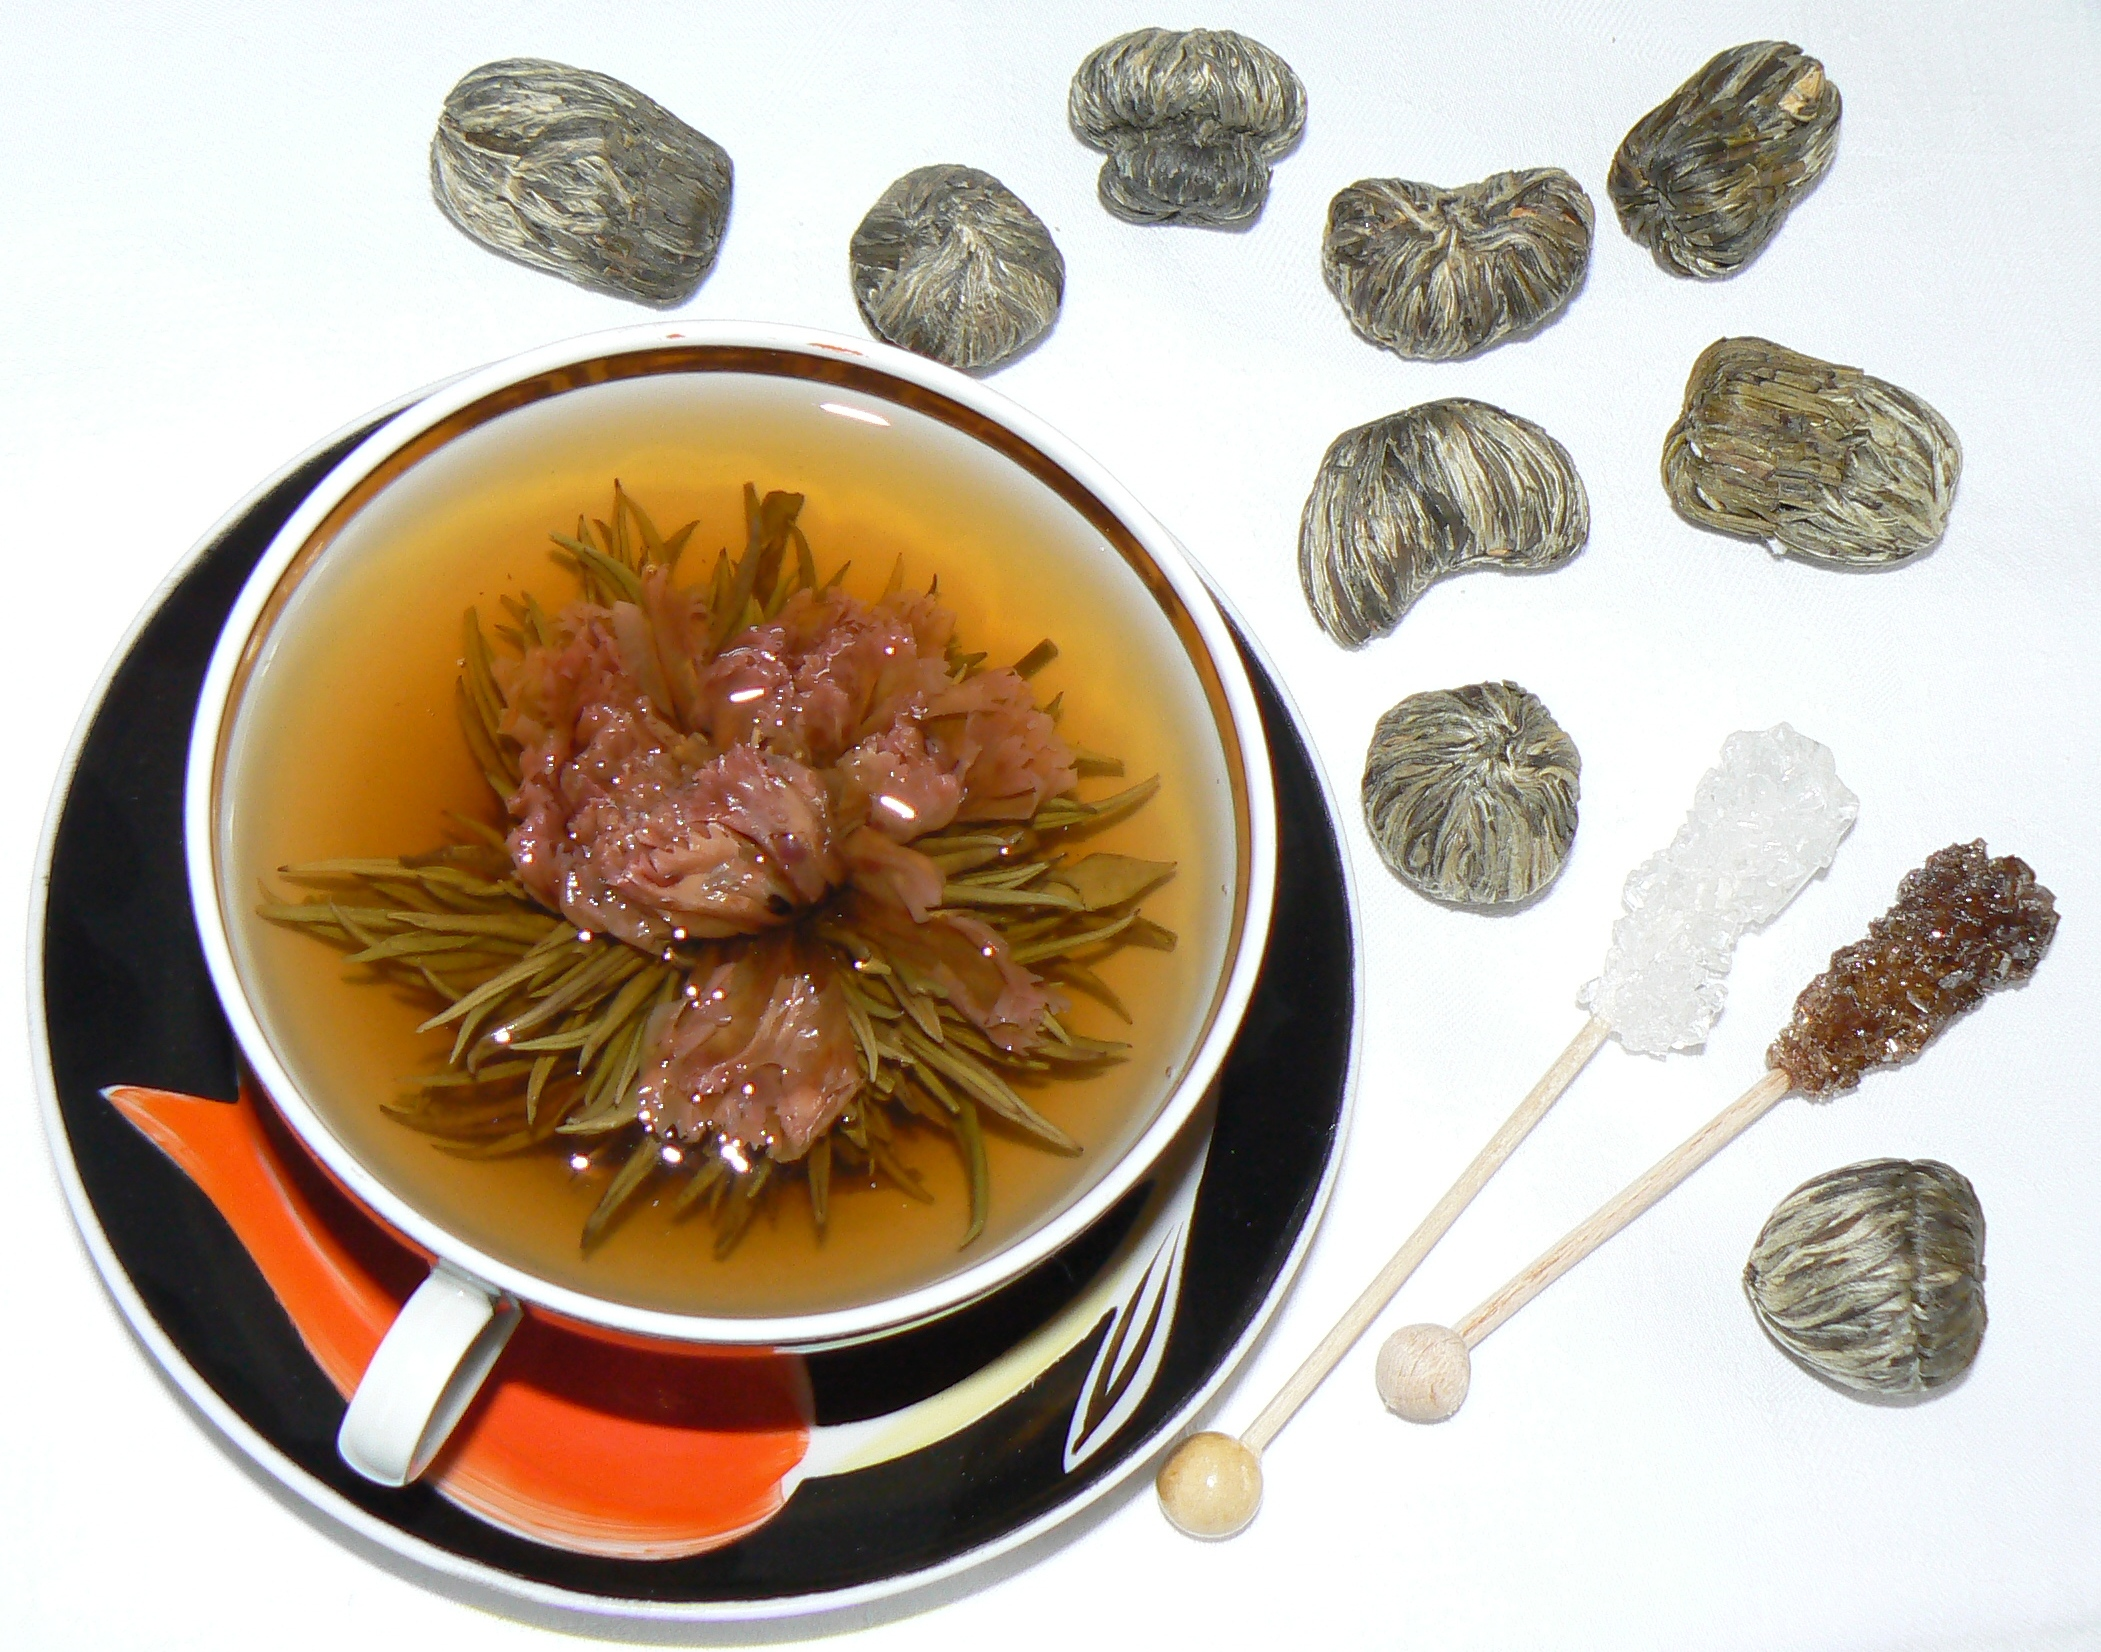 Chinese flower tea - It S A Real Specialty Of The Chinese Teas And Moreover Subdivided Into Scented Tea And Flower One So The Flower Tea Is Processing With Usage Of Dried